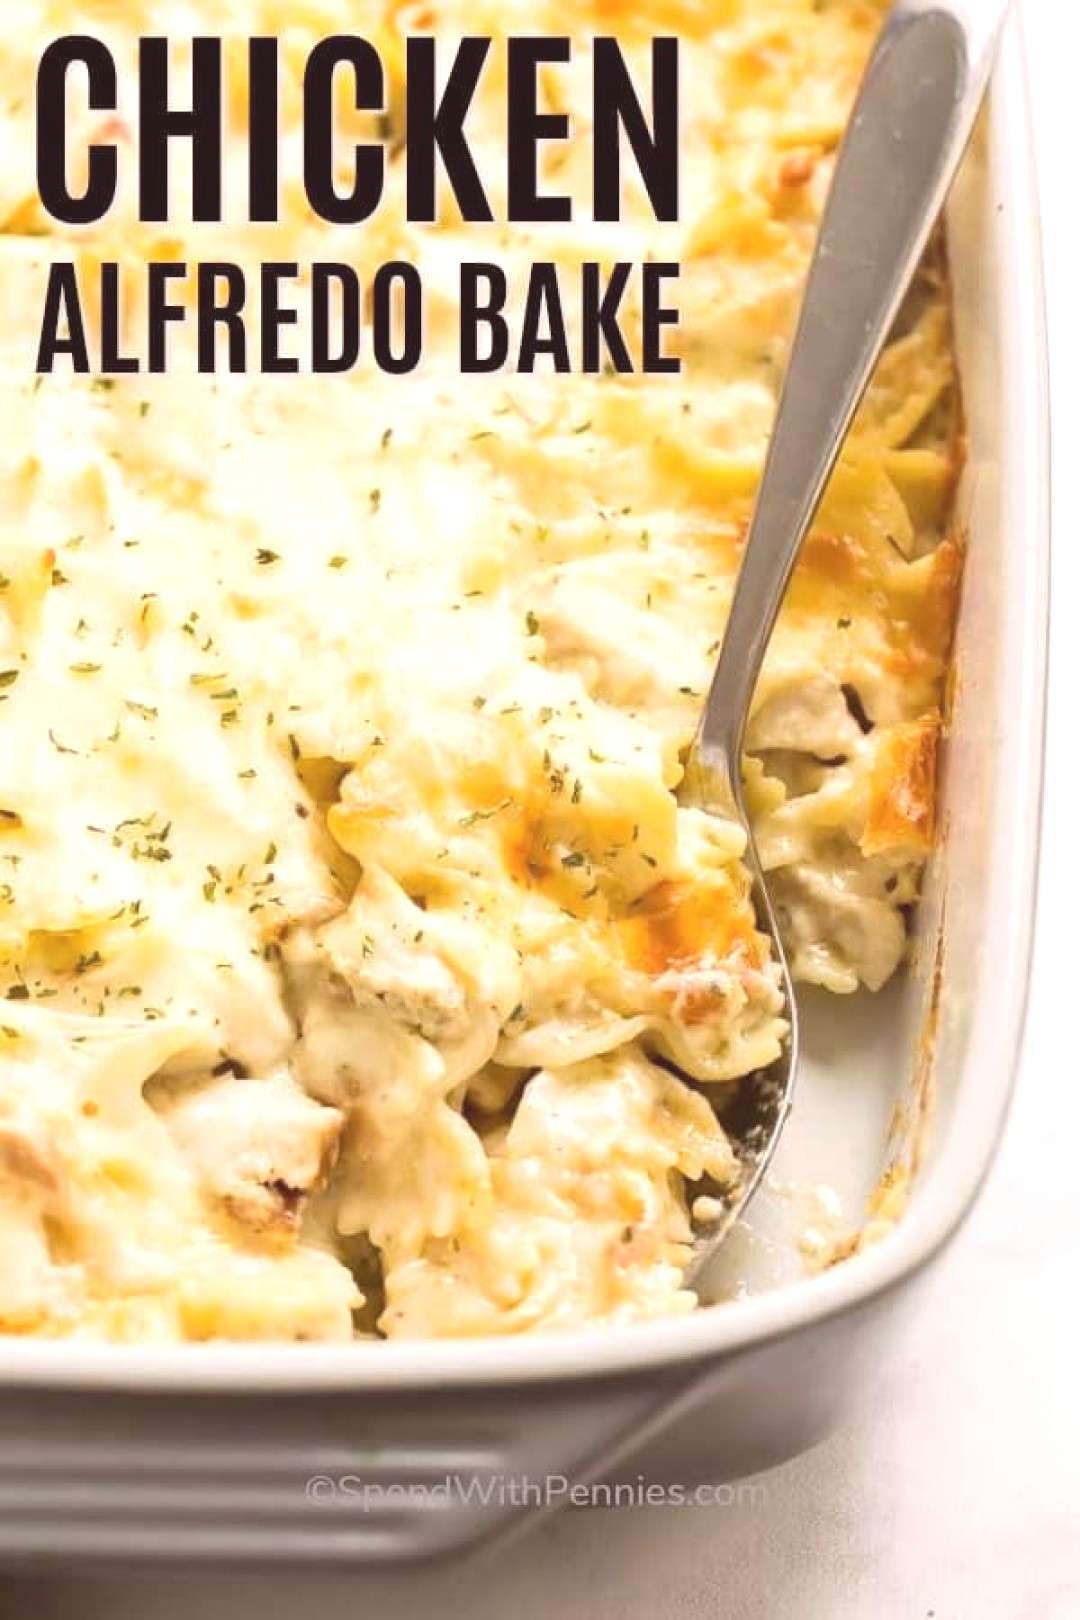 Chicken Alfredo Bake Great Freezer Dish! - Spend with Pennies - -